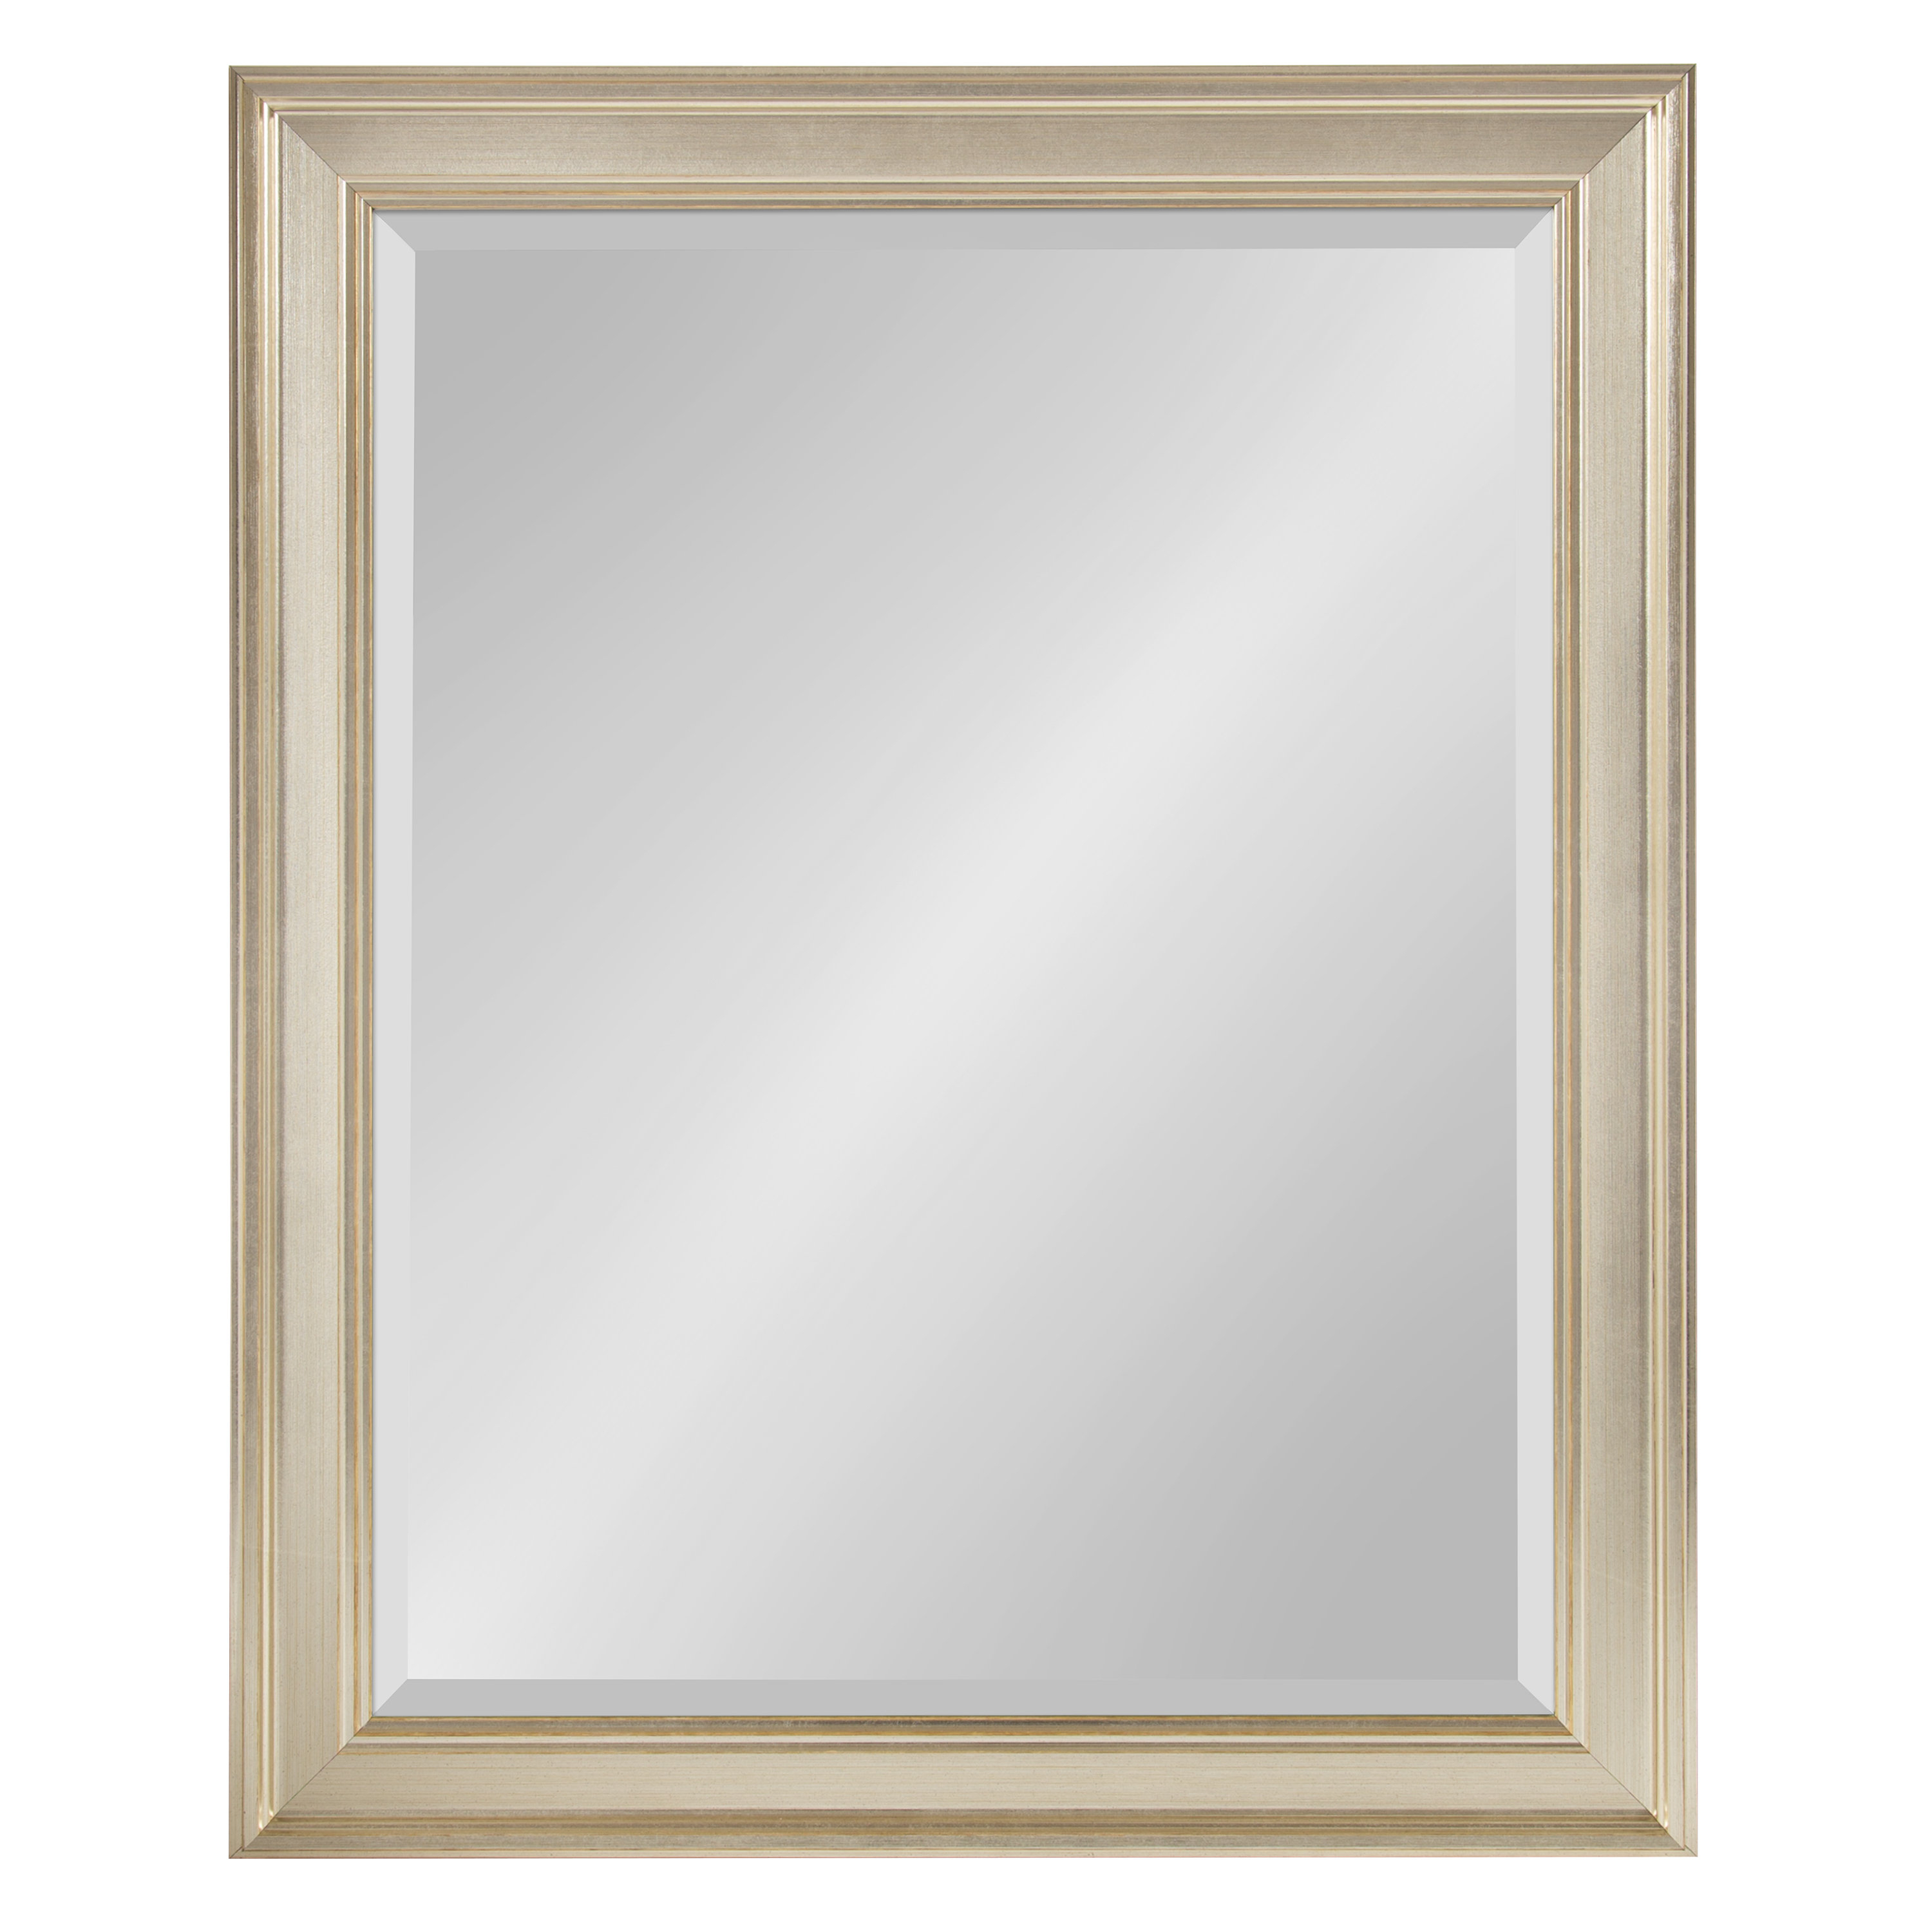 Salter Framed Rectangle Accent Mirror In Dedrick Decorative Framed Modern And Contemporary Wall Mirrors (View 8 of 20)